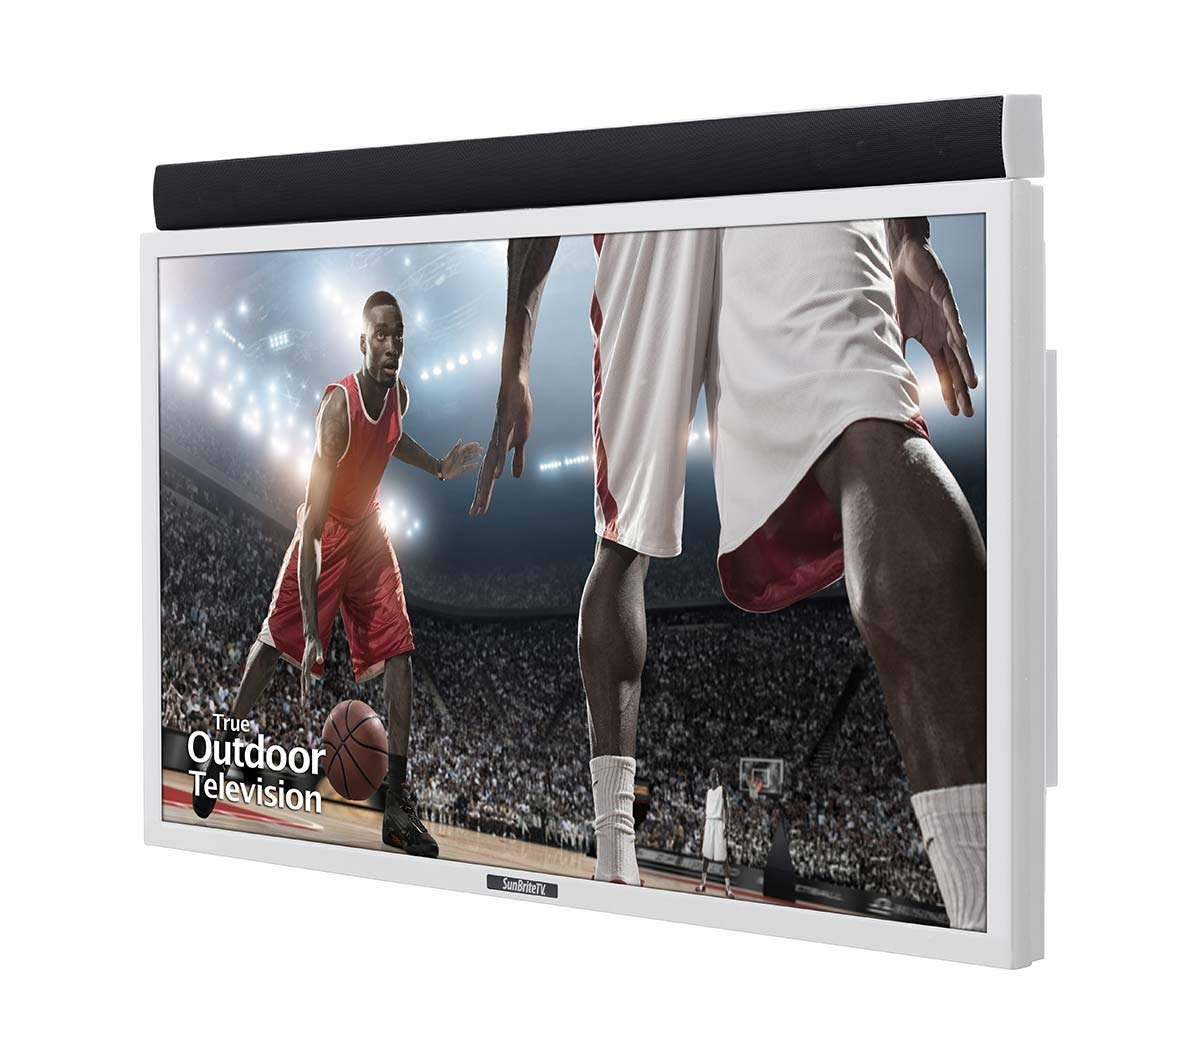 An image of SunBriteTV SB-4917HD-WH 49-Inch FHD LED Outdoor TV